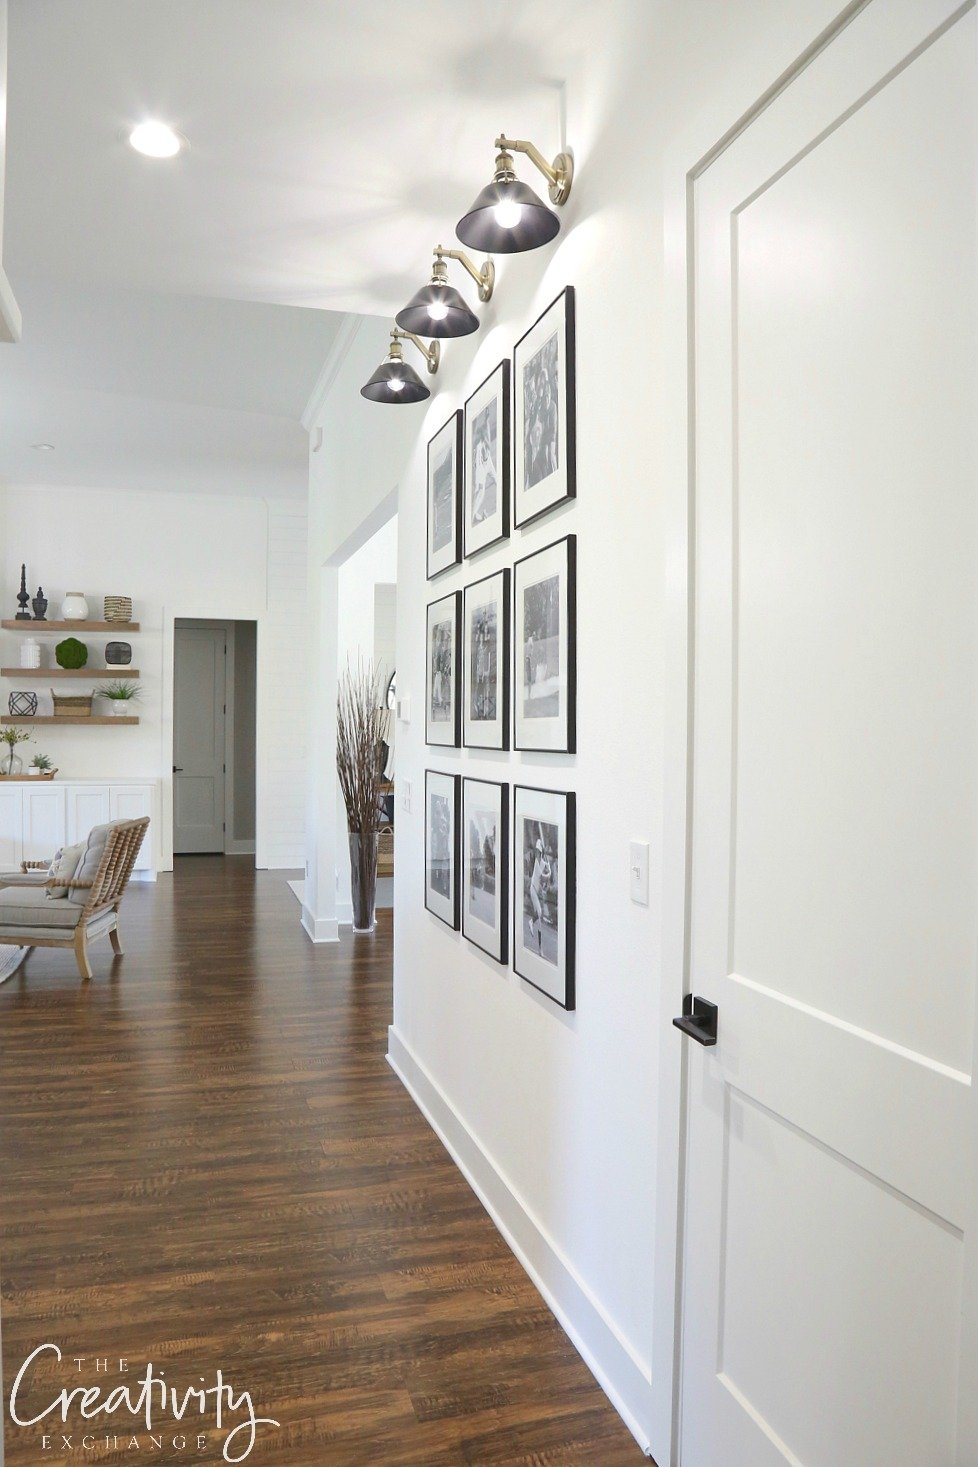 Gallery wall shortcuts and tricks